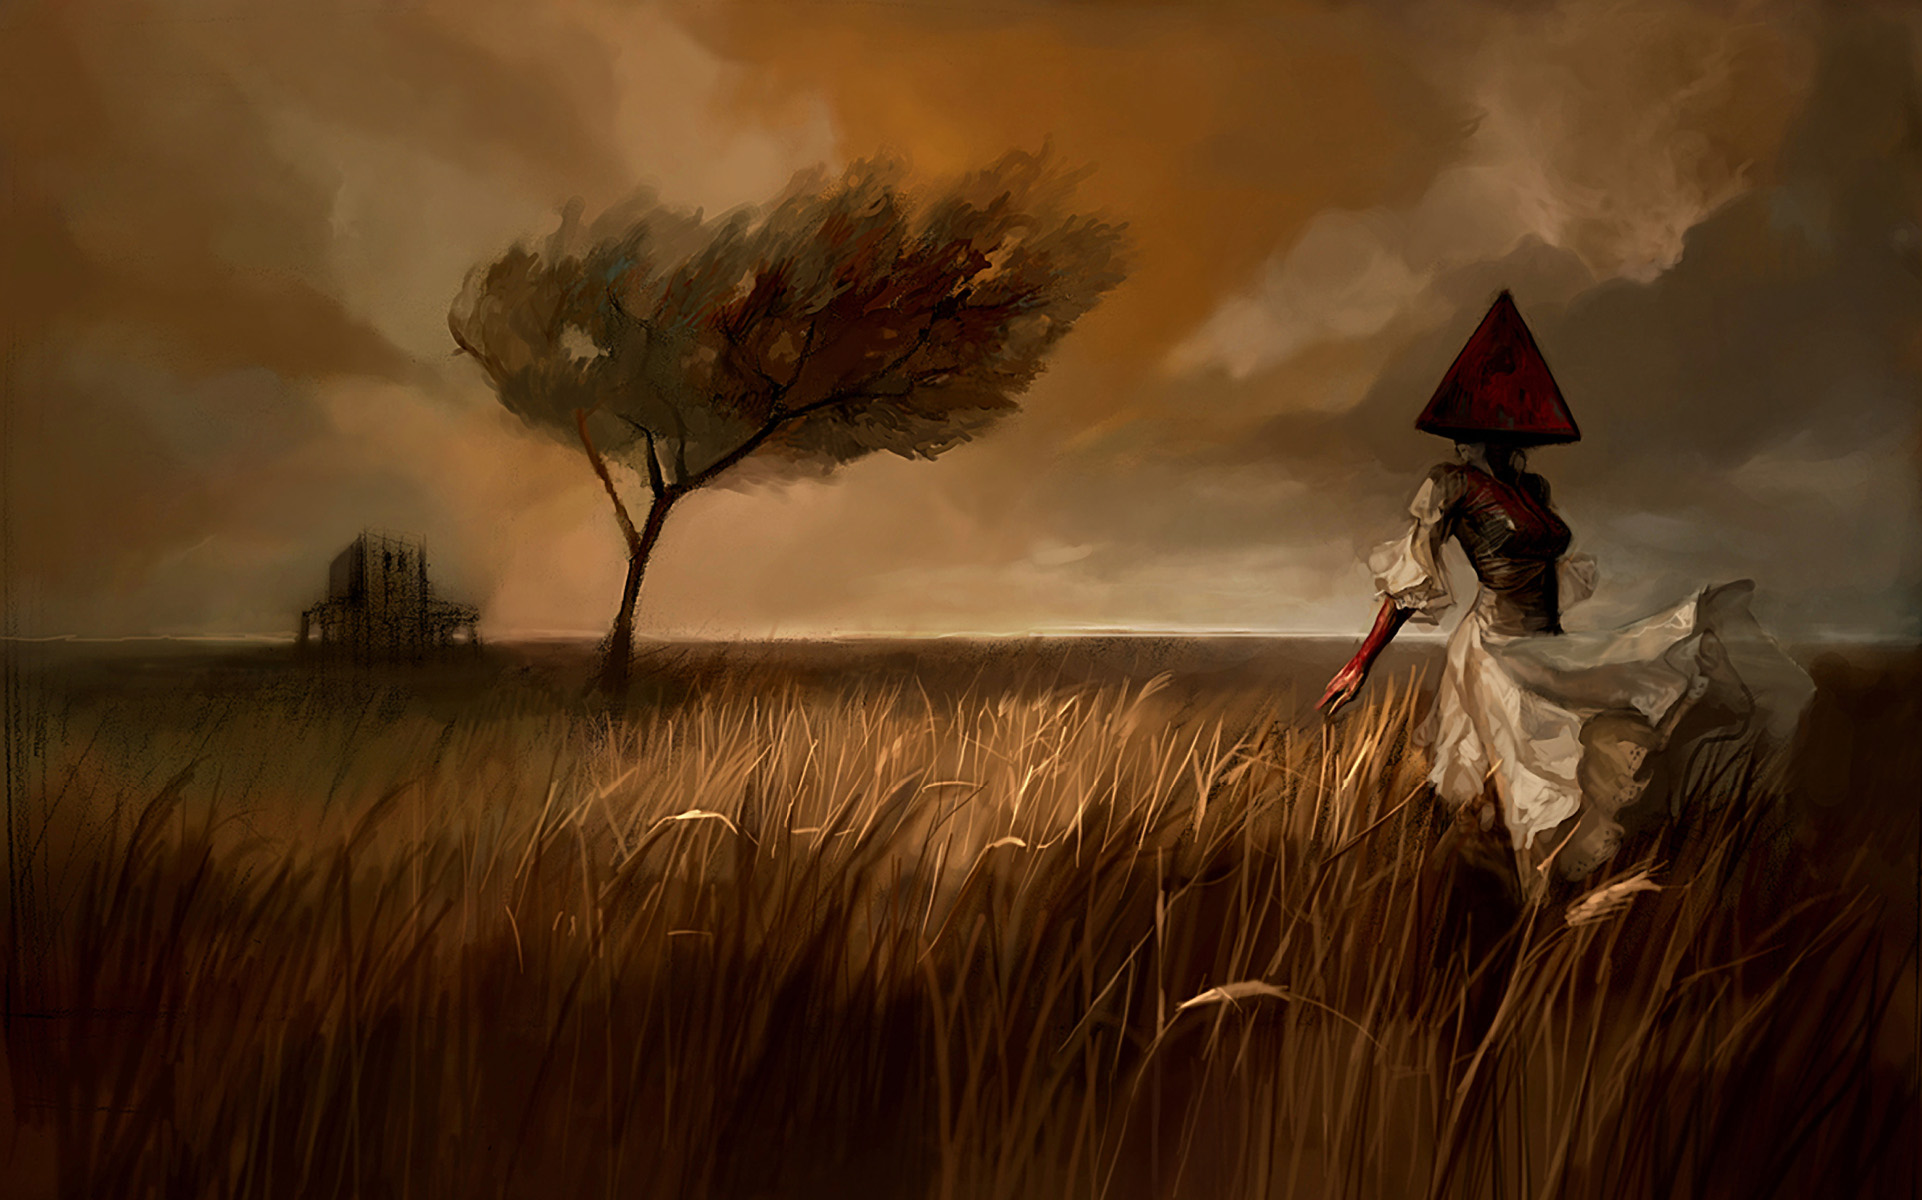 Anime Girl Hd Wallpaper For Android Pyramid Head Silent Hill Zerochan Anime Image Board